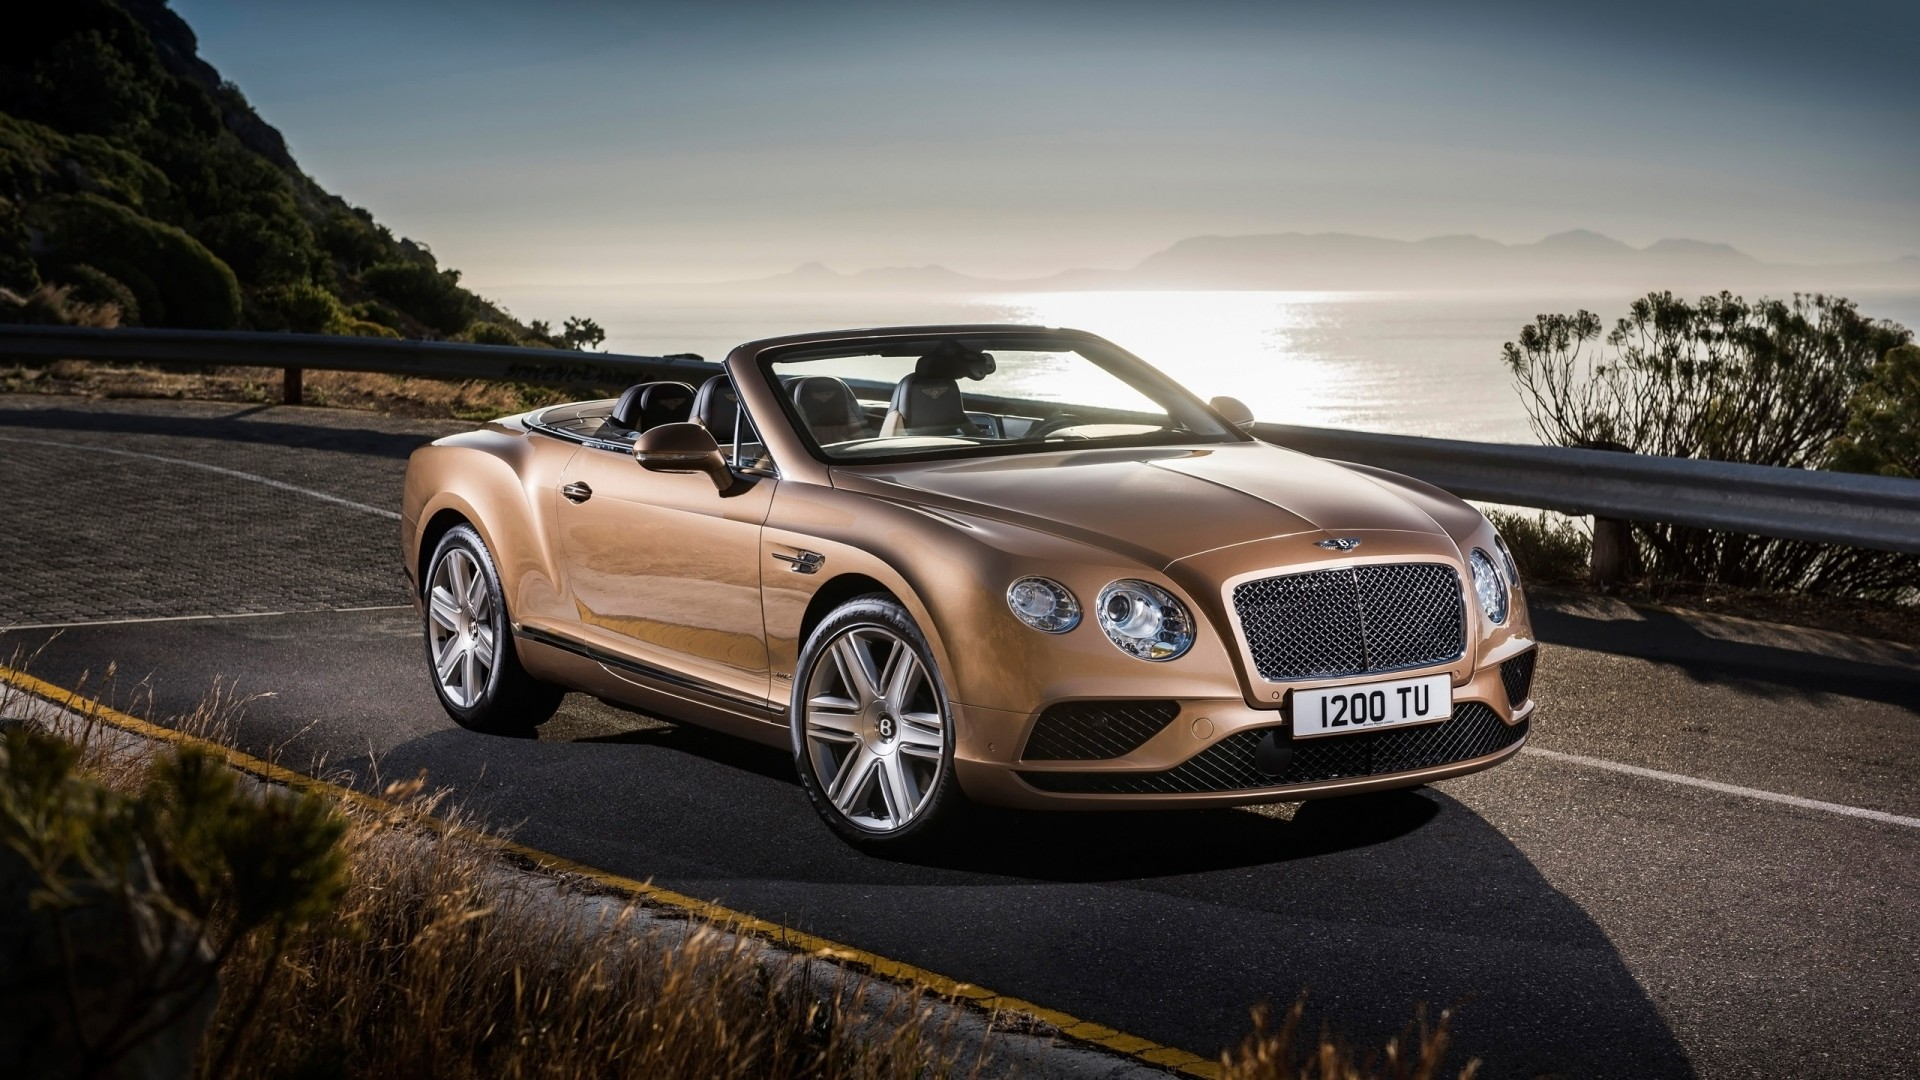 Mercedes Benz Newport Beach >> Bentley Continental GT Convertible 2015 Wallpaper | HD Car ...